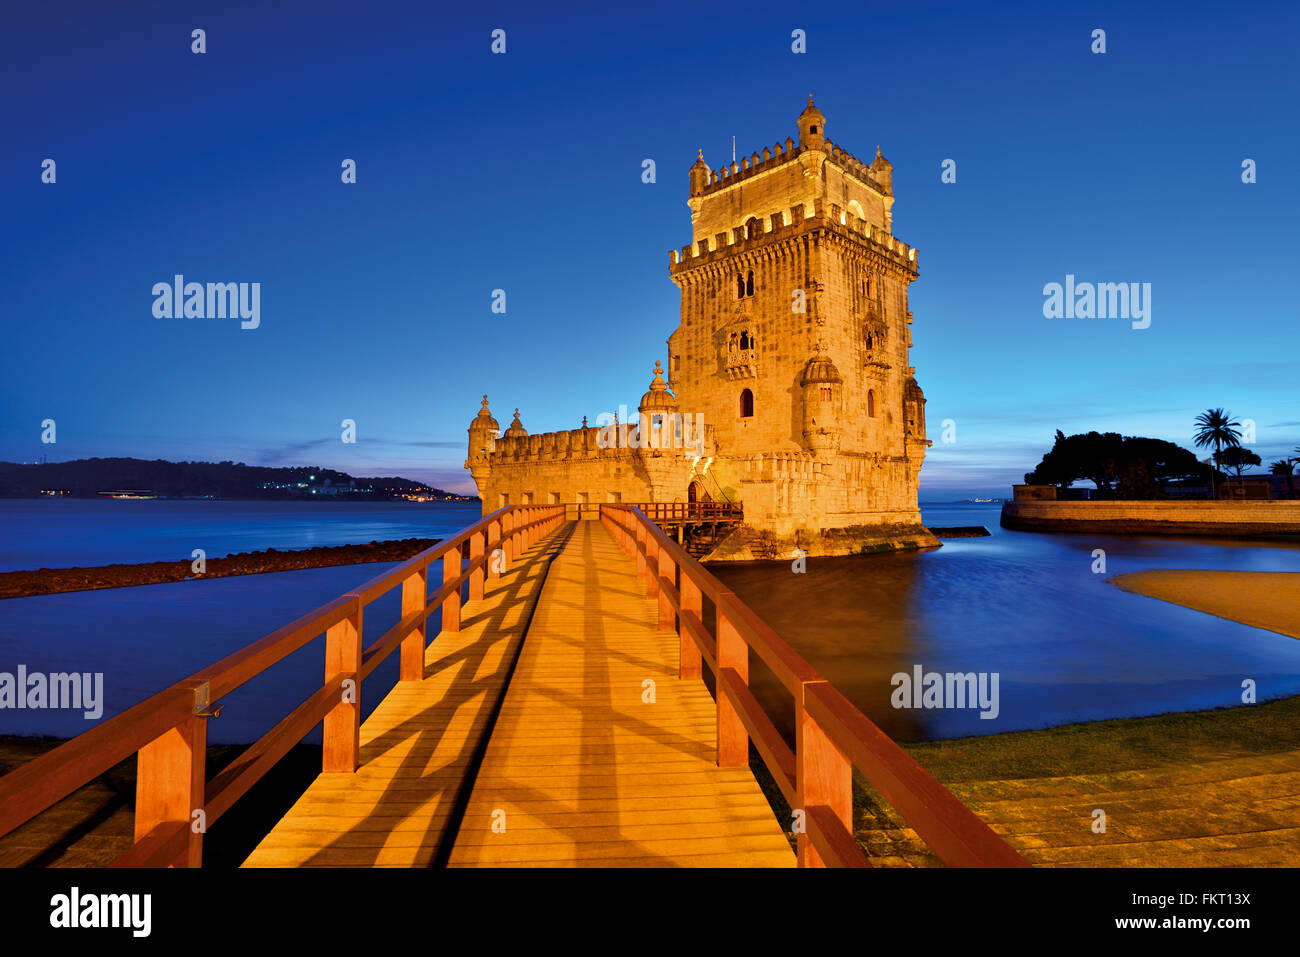 Portugal, Lisbon: Monumental Tower of Belém by night - Stock Image